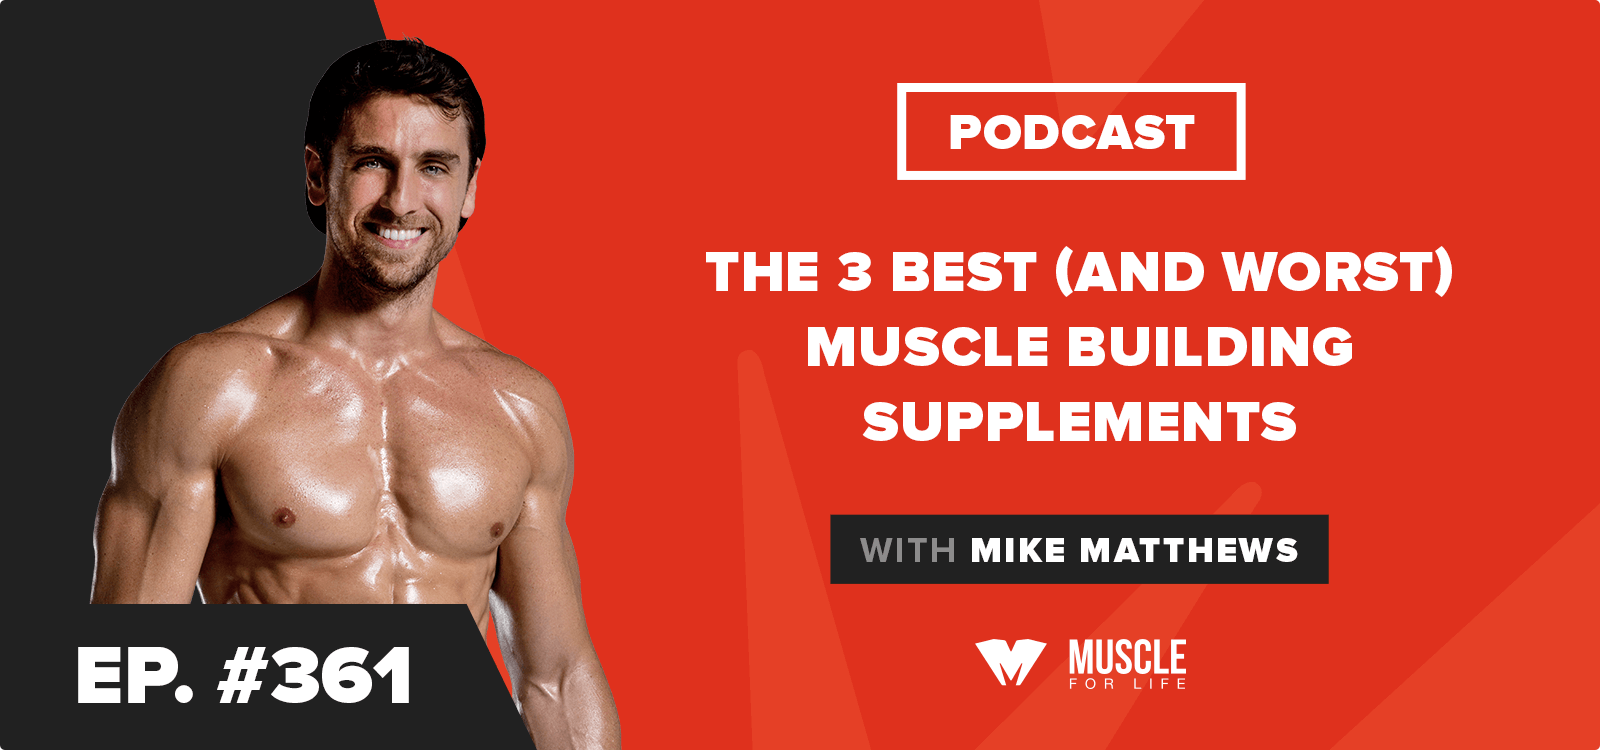 The 3 Best (and Worst) Muscle Building Supplements